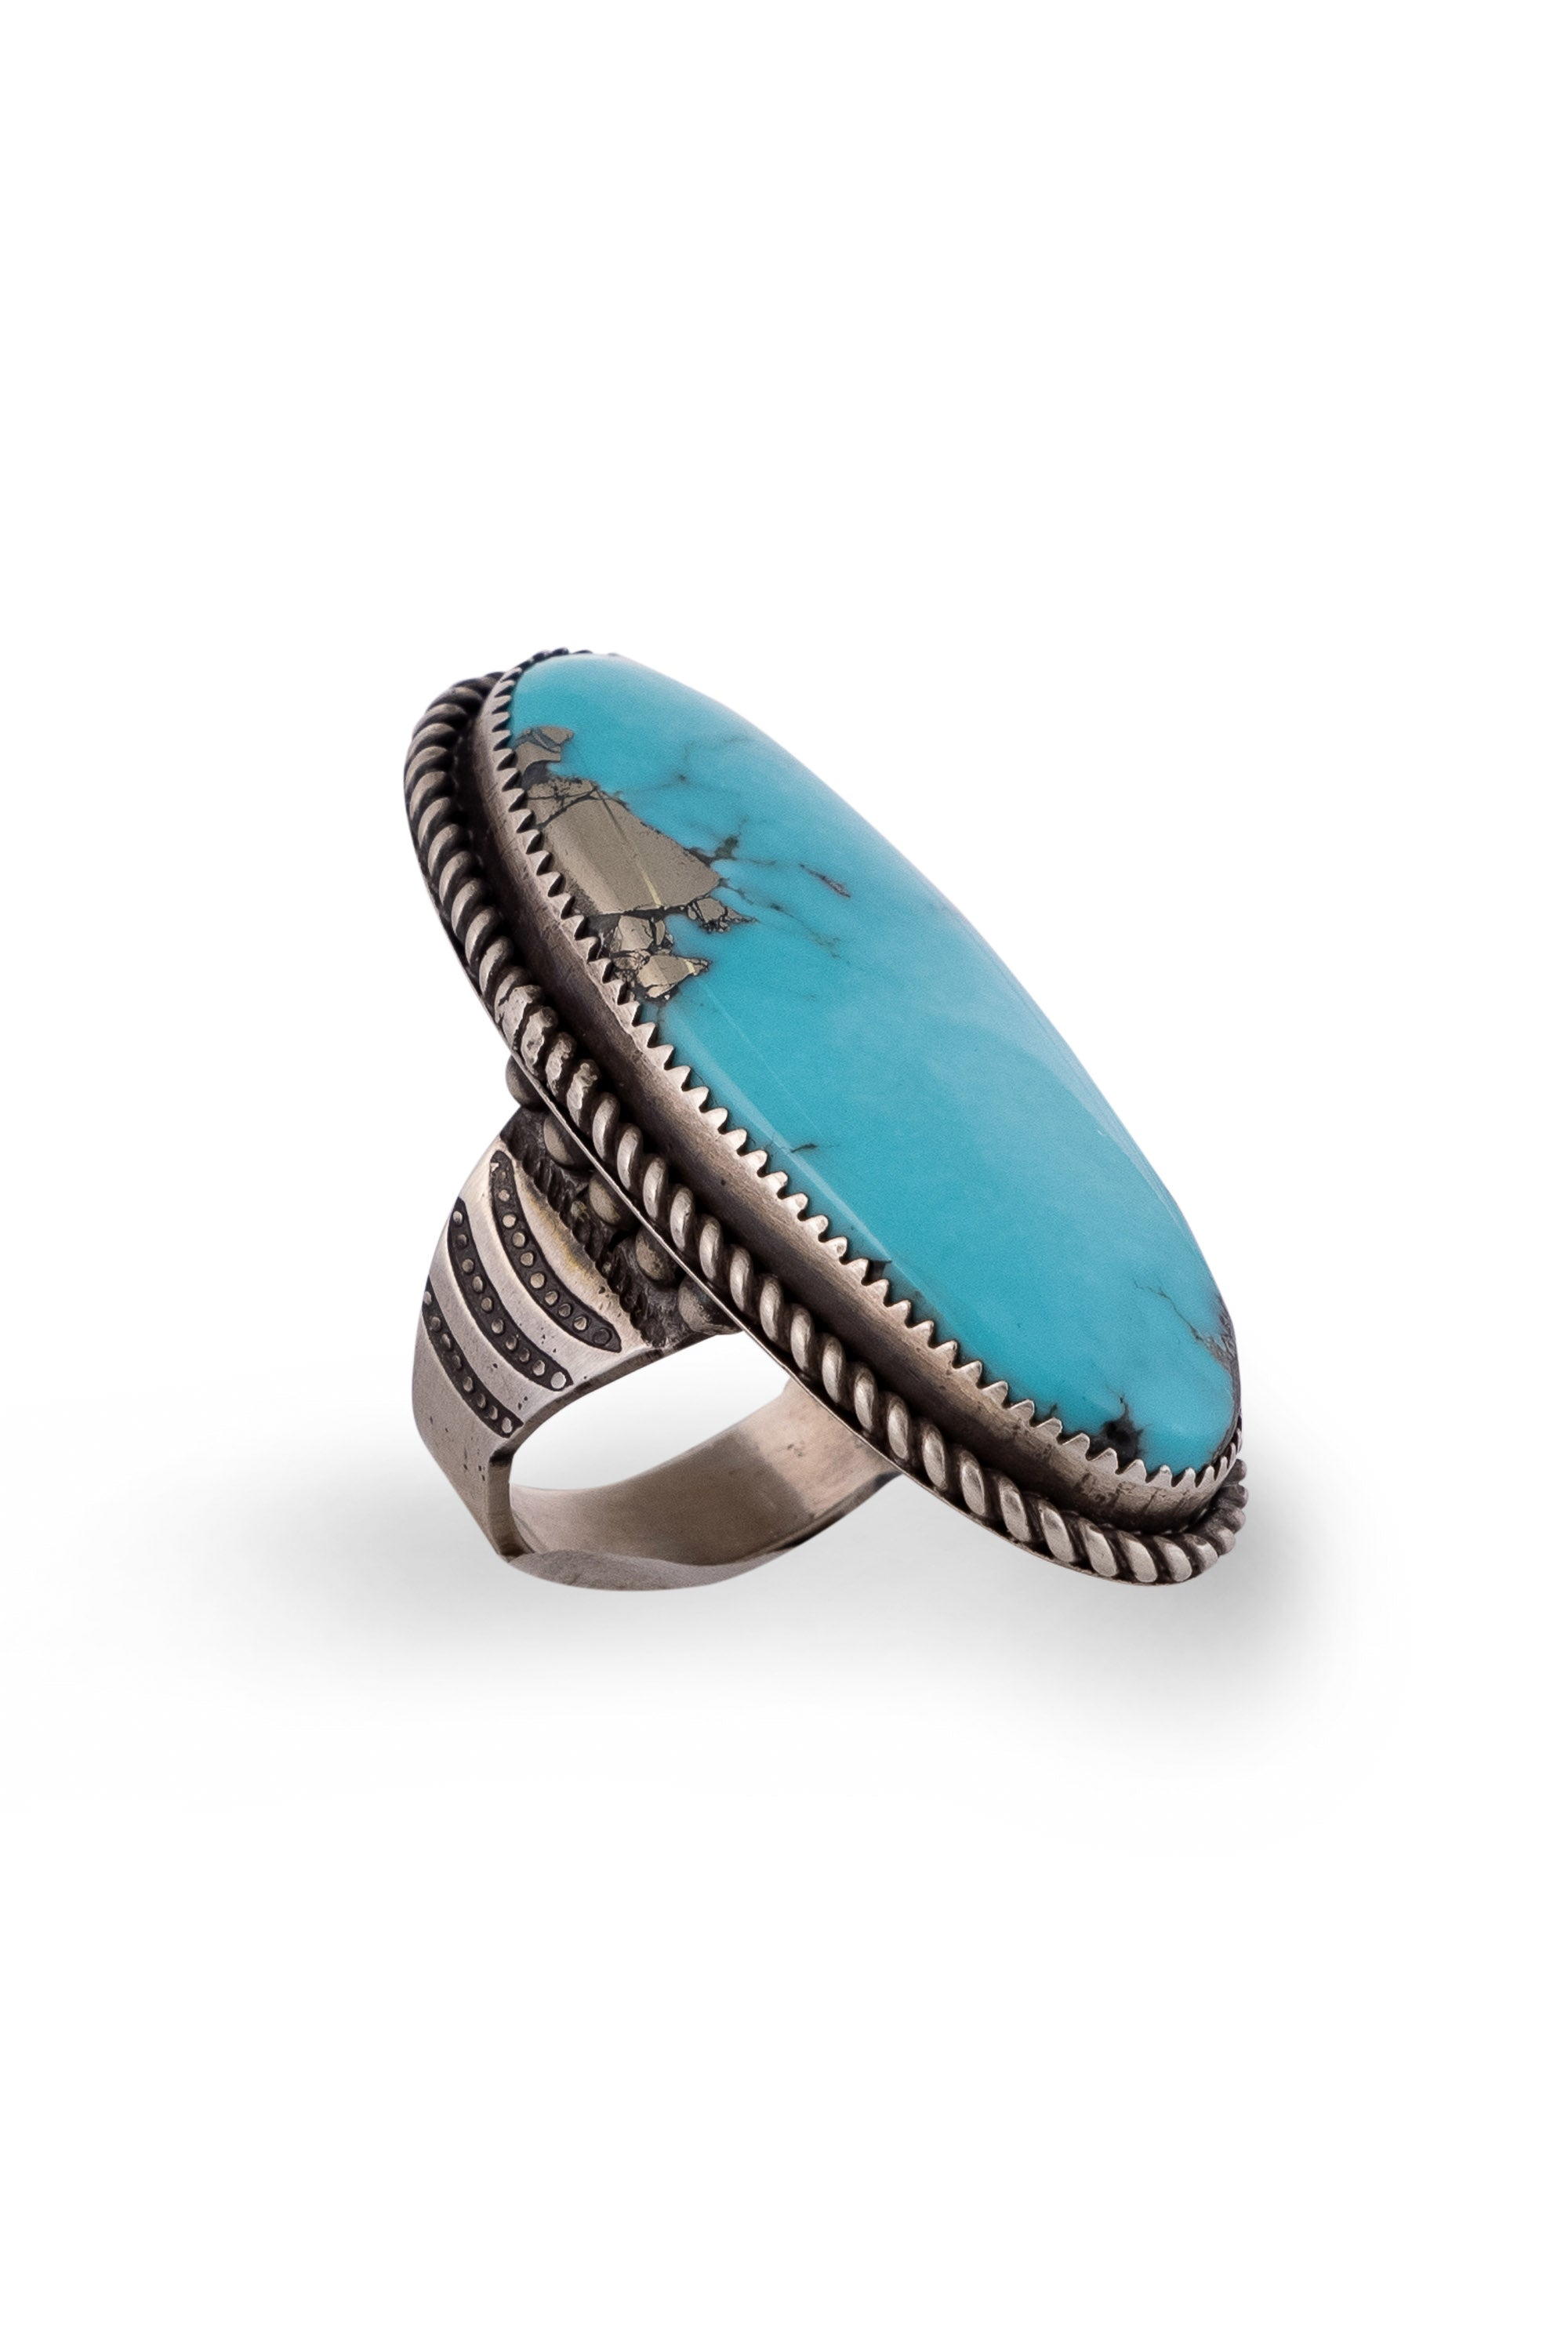 Ring, Turquoise, Single Stone, Castle Dome, Hallmark, 682